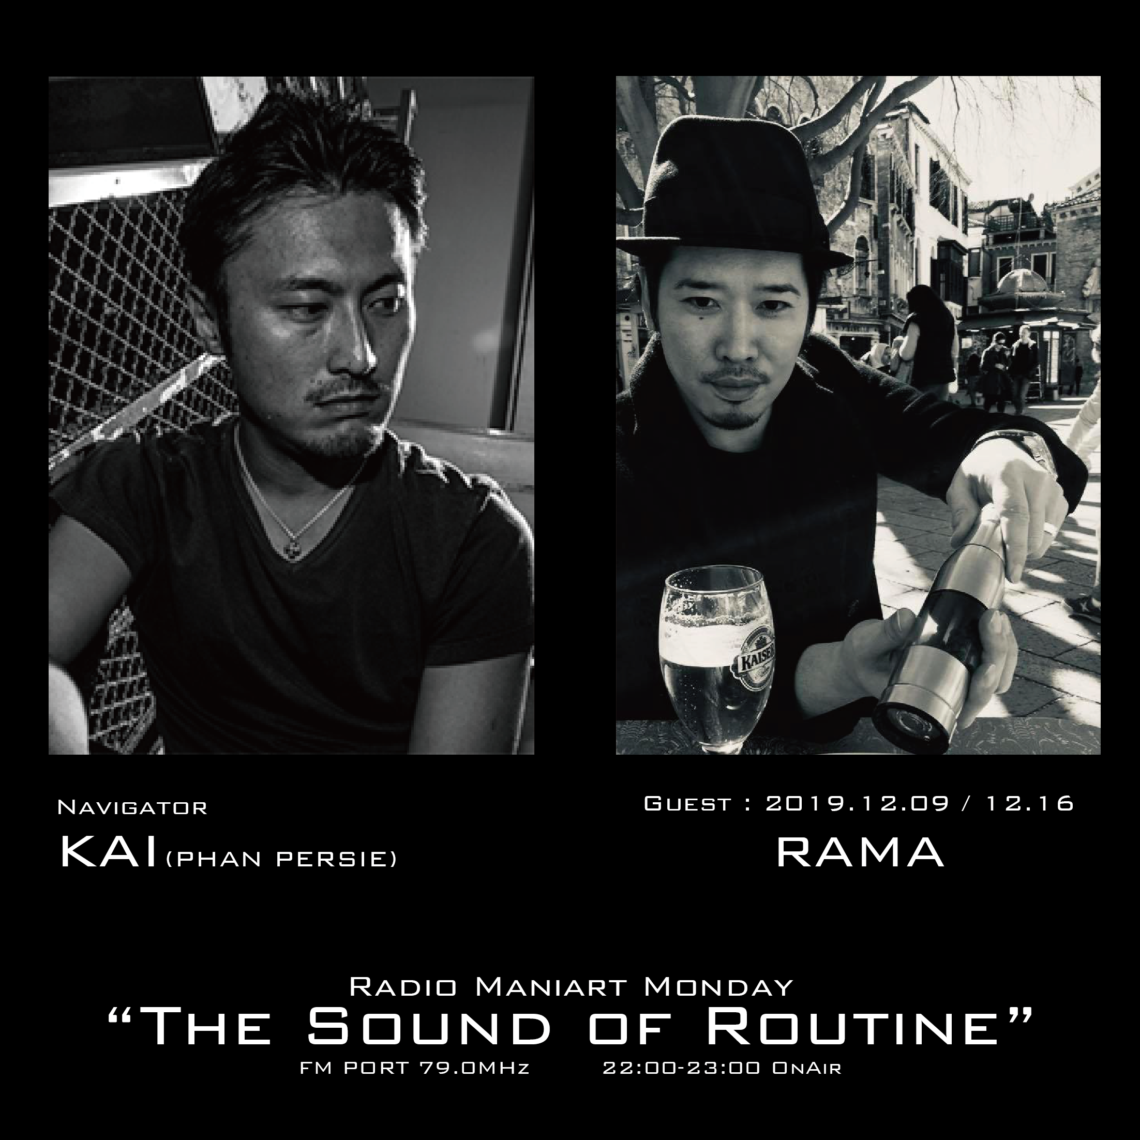 2019. 12. 9 MON, 12. 16 MON – KAI : Navigator on FM PORT / the Sound of Routine – Guest : RAMA